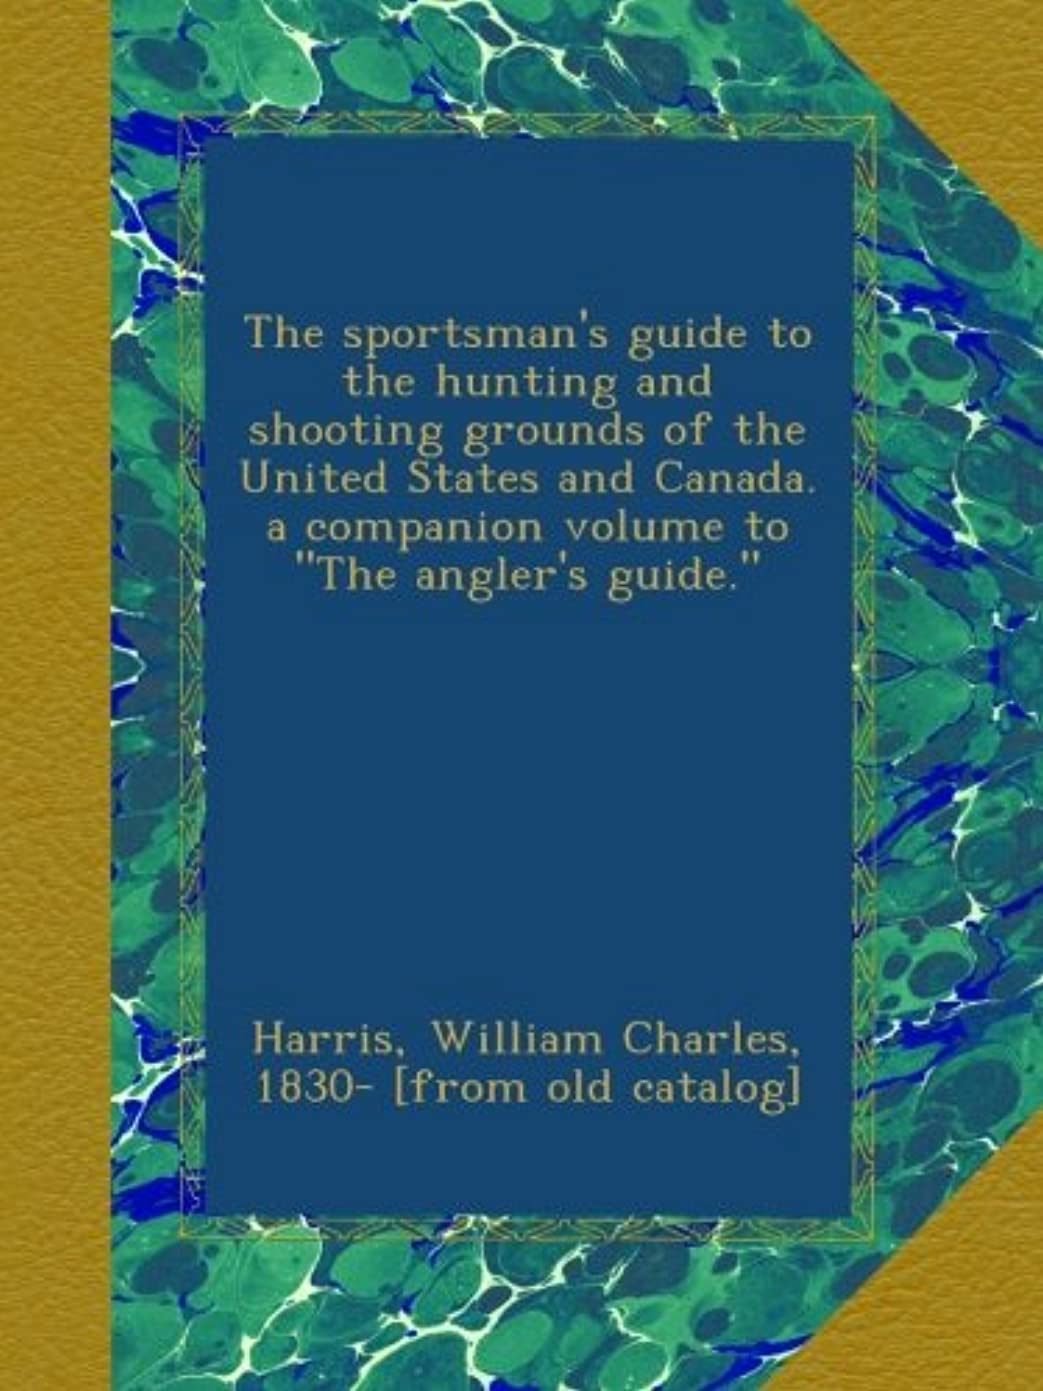 自発的不適切な鋸歯状The sportsman's guide to the hunting and shooting grounds of the United States and Canada. a companion volume to